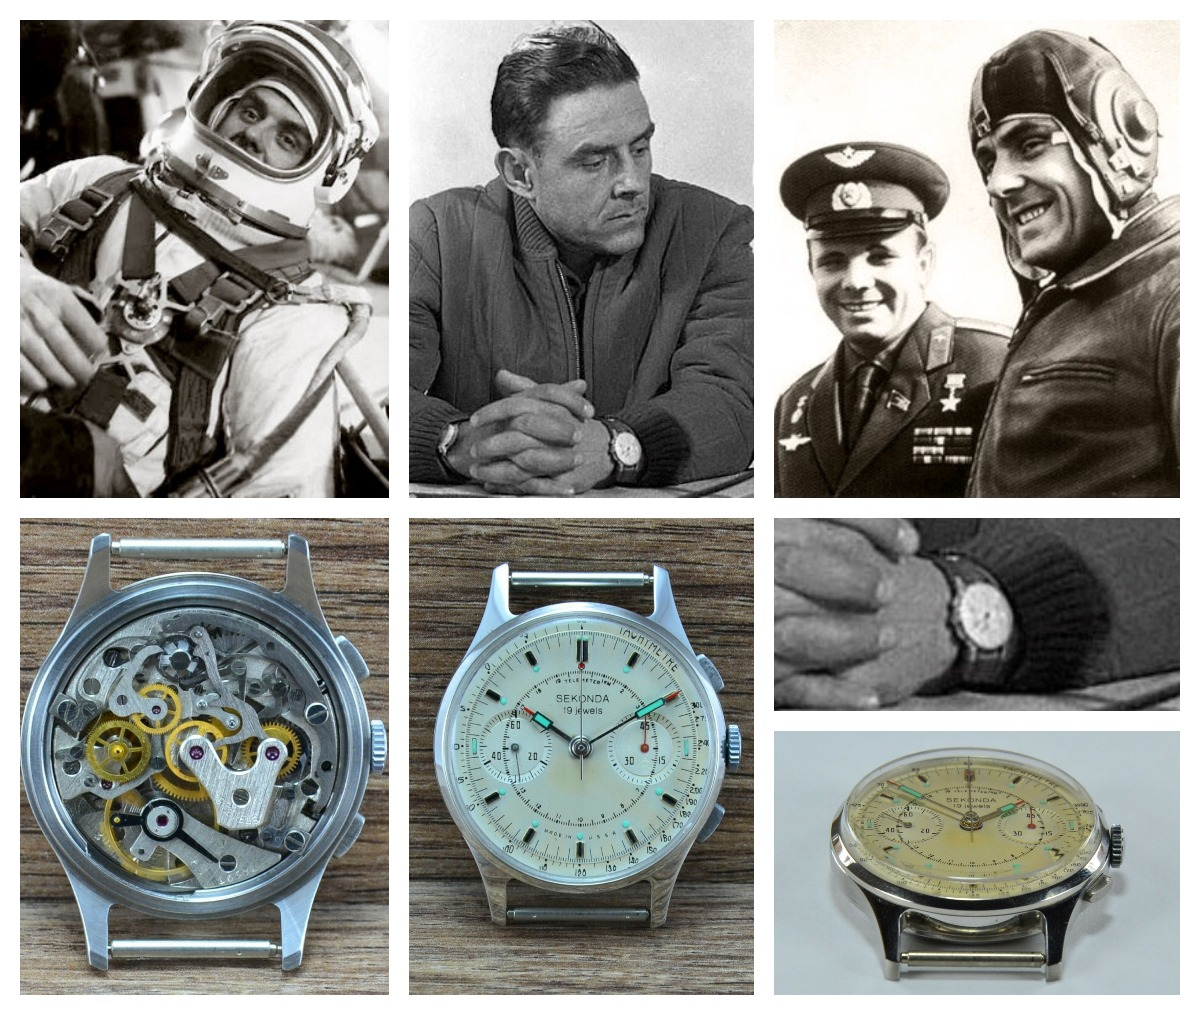 Vladimir Komarov was wearing a Sekonda labeled Strela with a cream dial during his training and the Soyuz-1 mission. Credits: STRELA